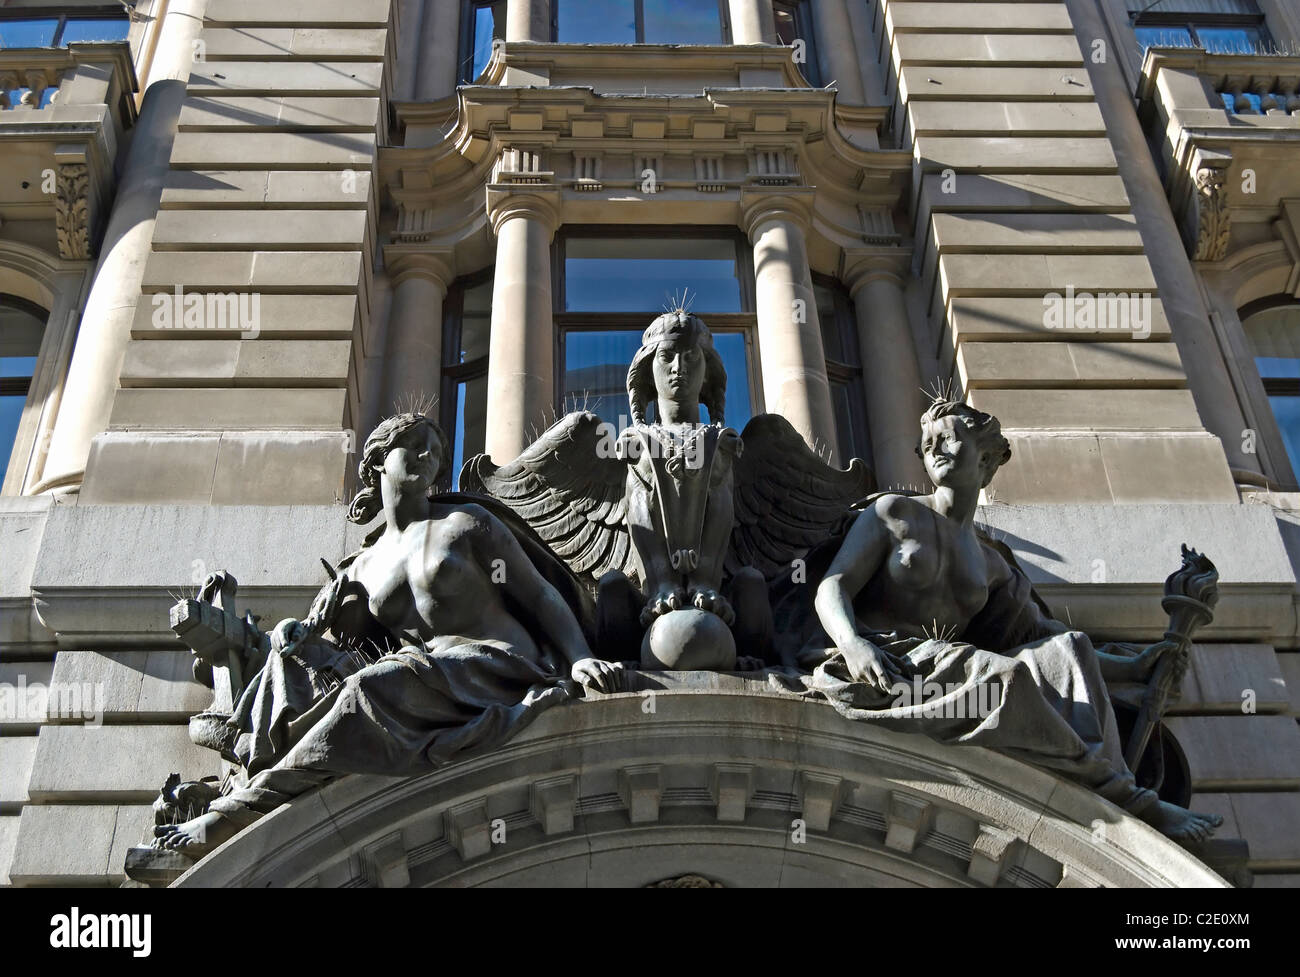 statuary above entrance to the 1910 royal insurance buildings, on lombard street in the city of london, england - Stock Image